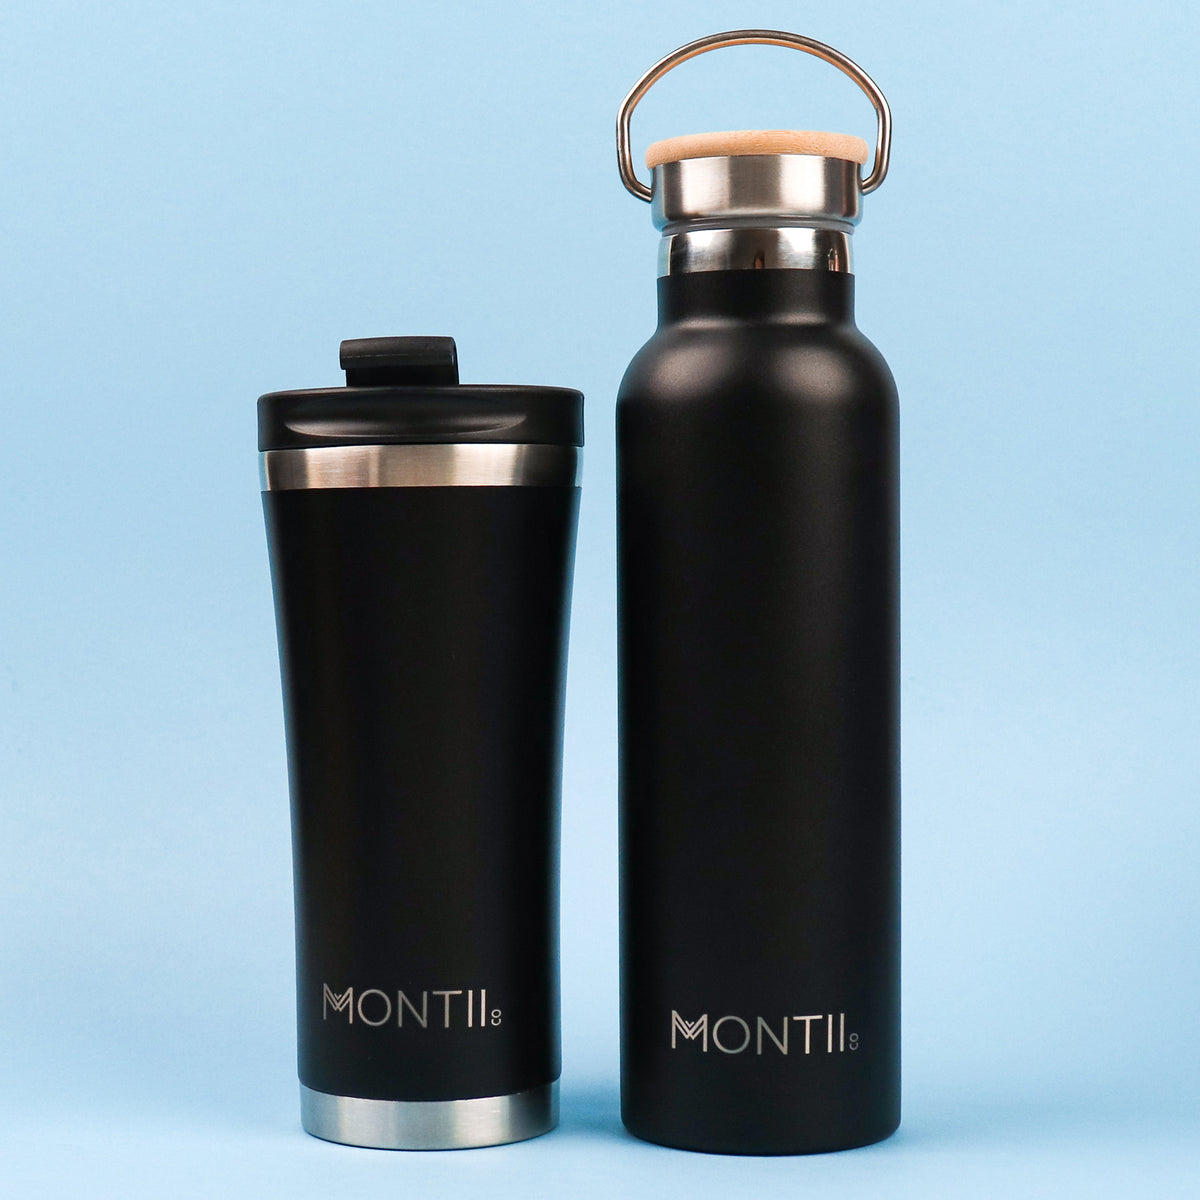 MontiiCo Original Drink Bottle - Black-Drink Bottle-Lunchbox Mini